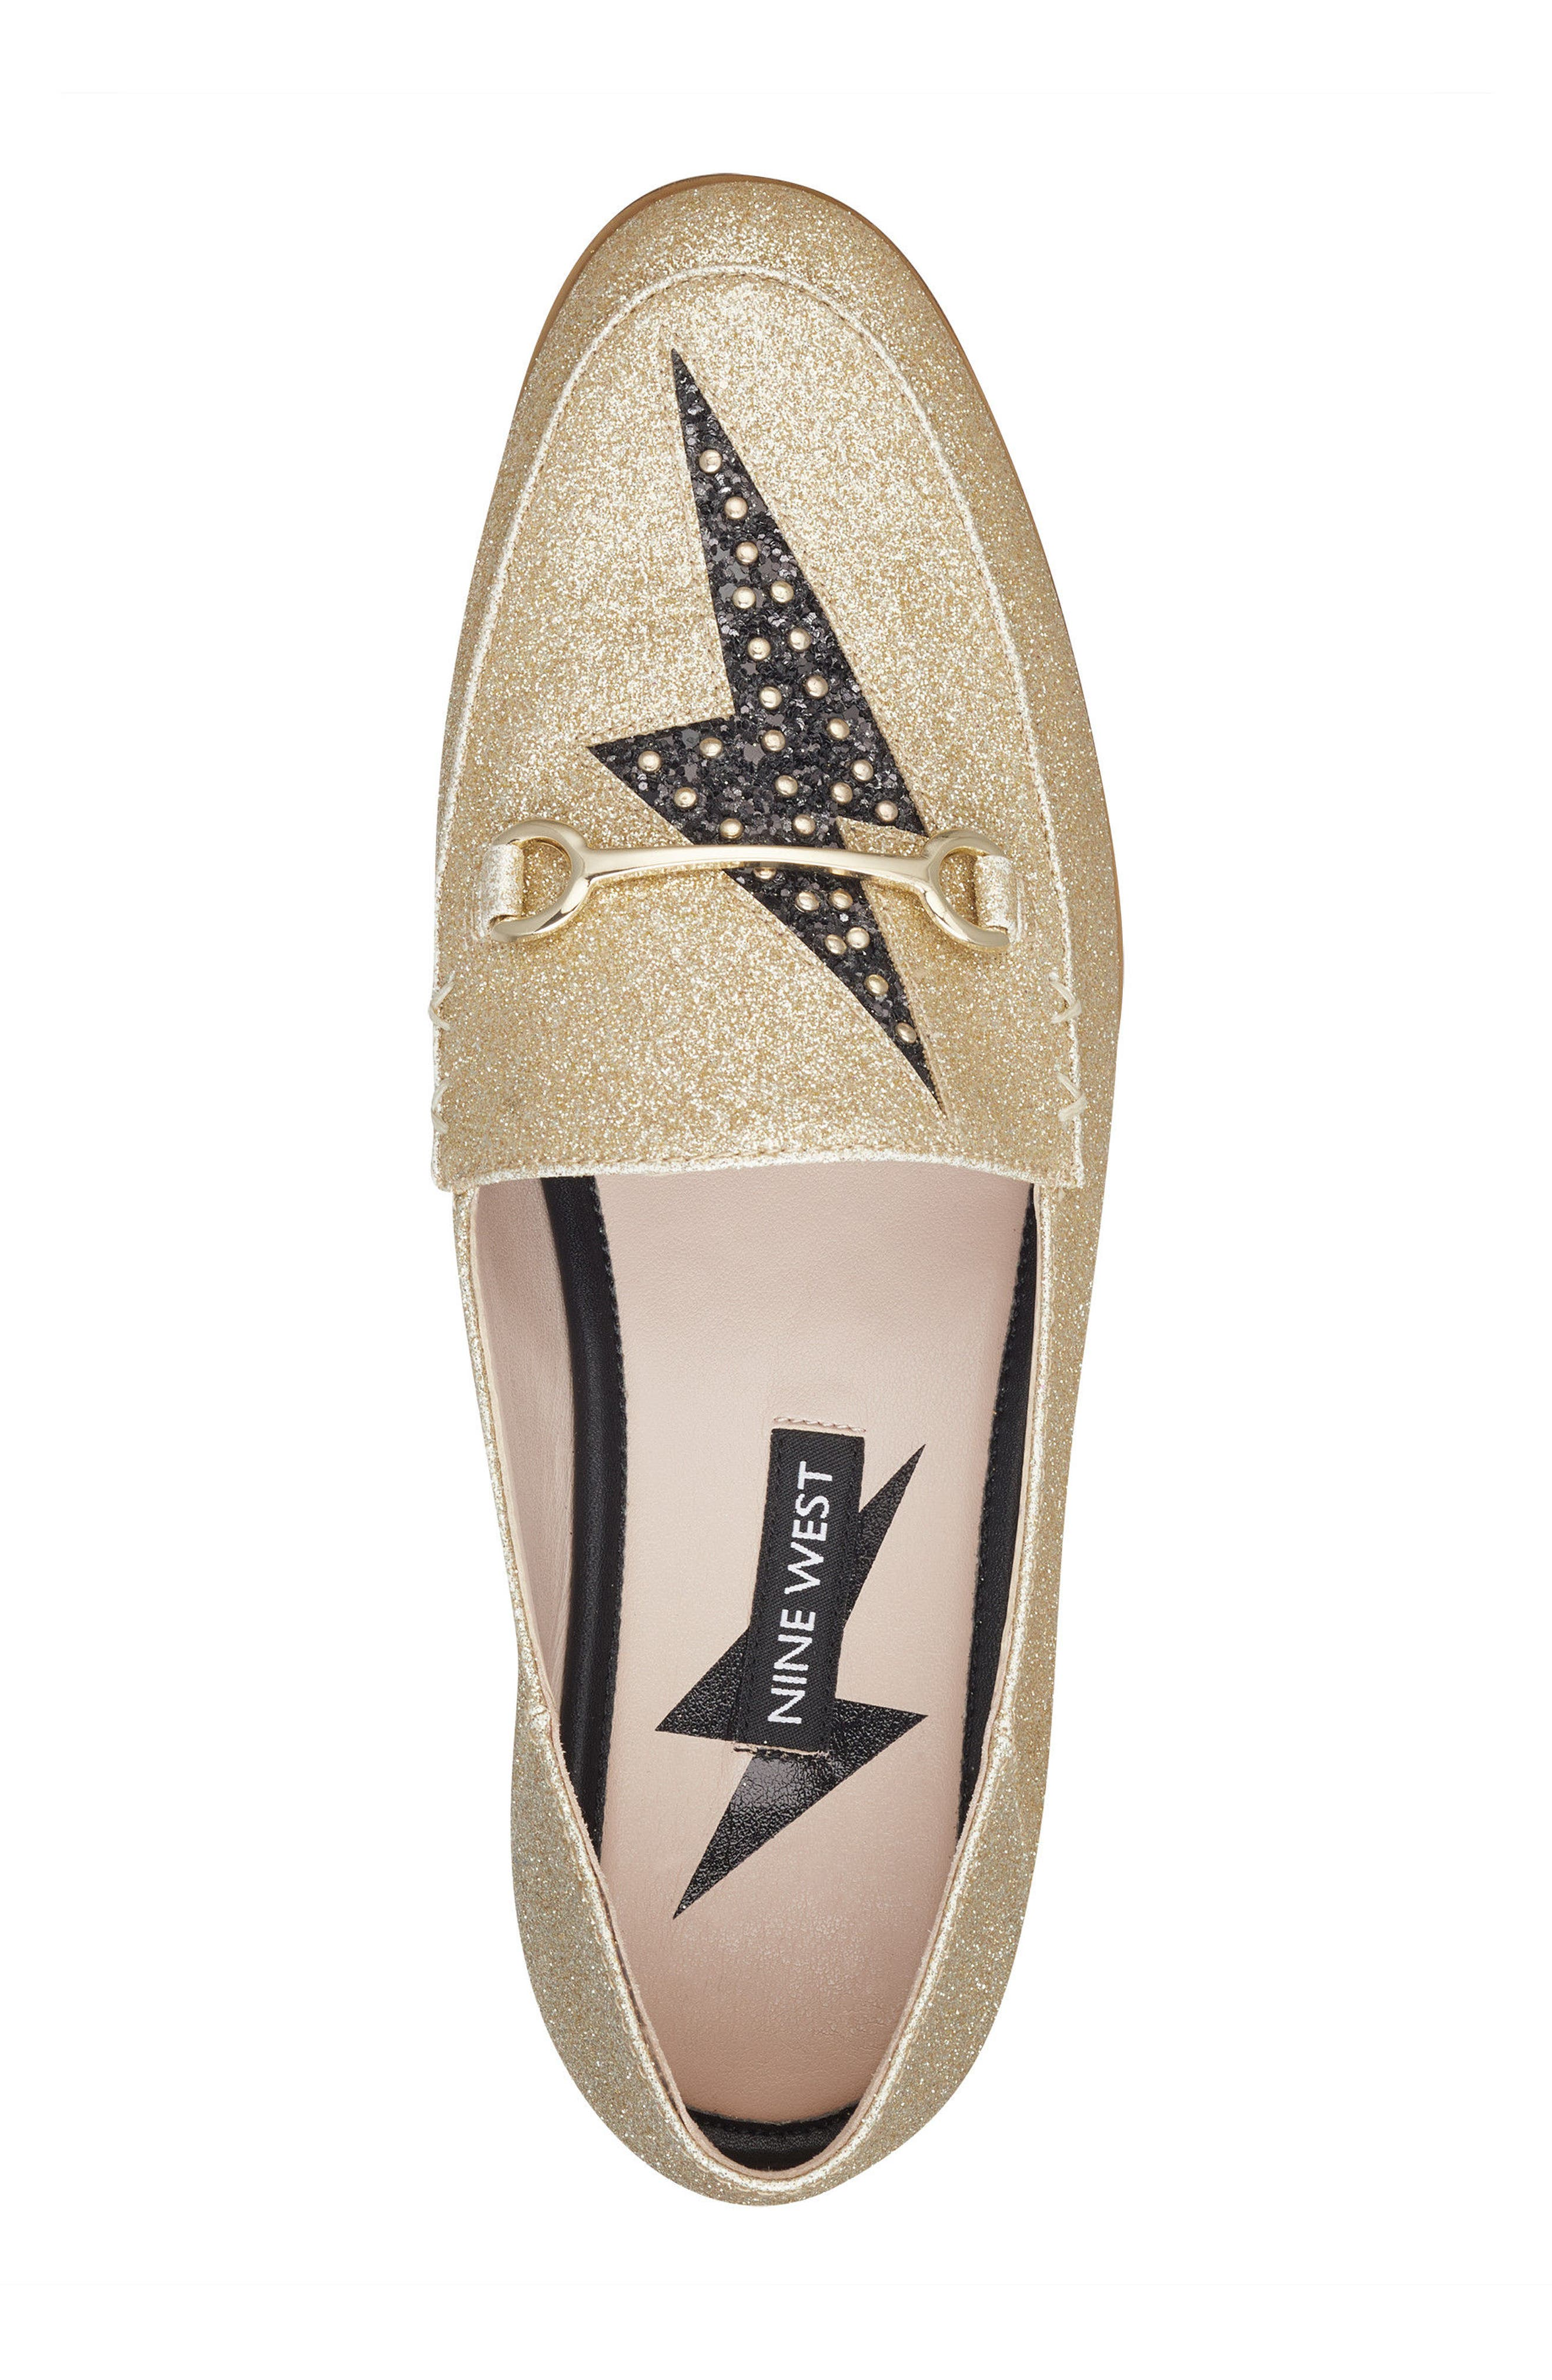 Wildgirls Embellished Loafer,                             Alternate thumbnail 5, color,                             Light Gold/ Black Fabric